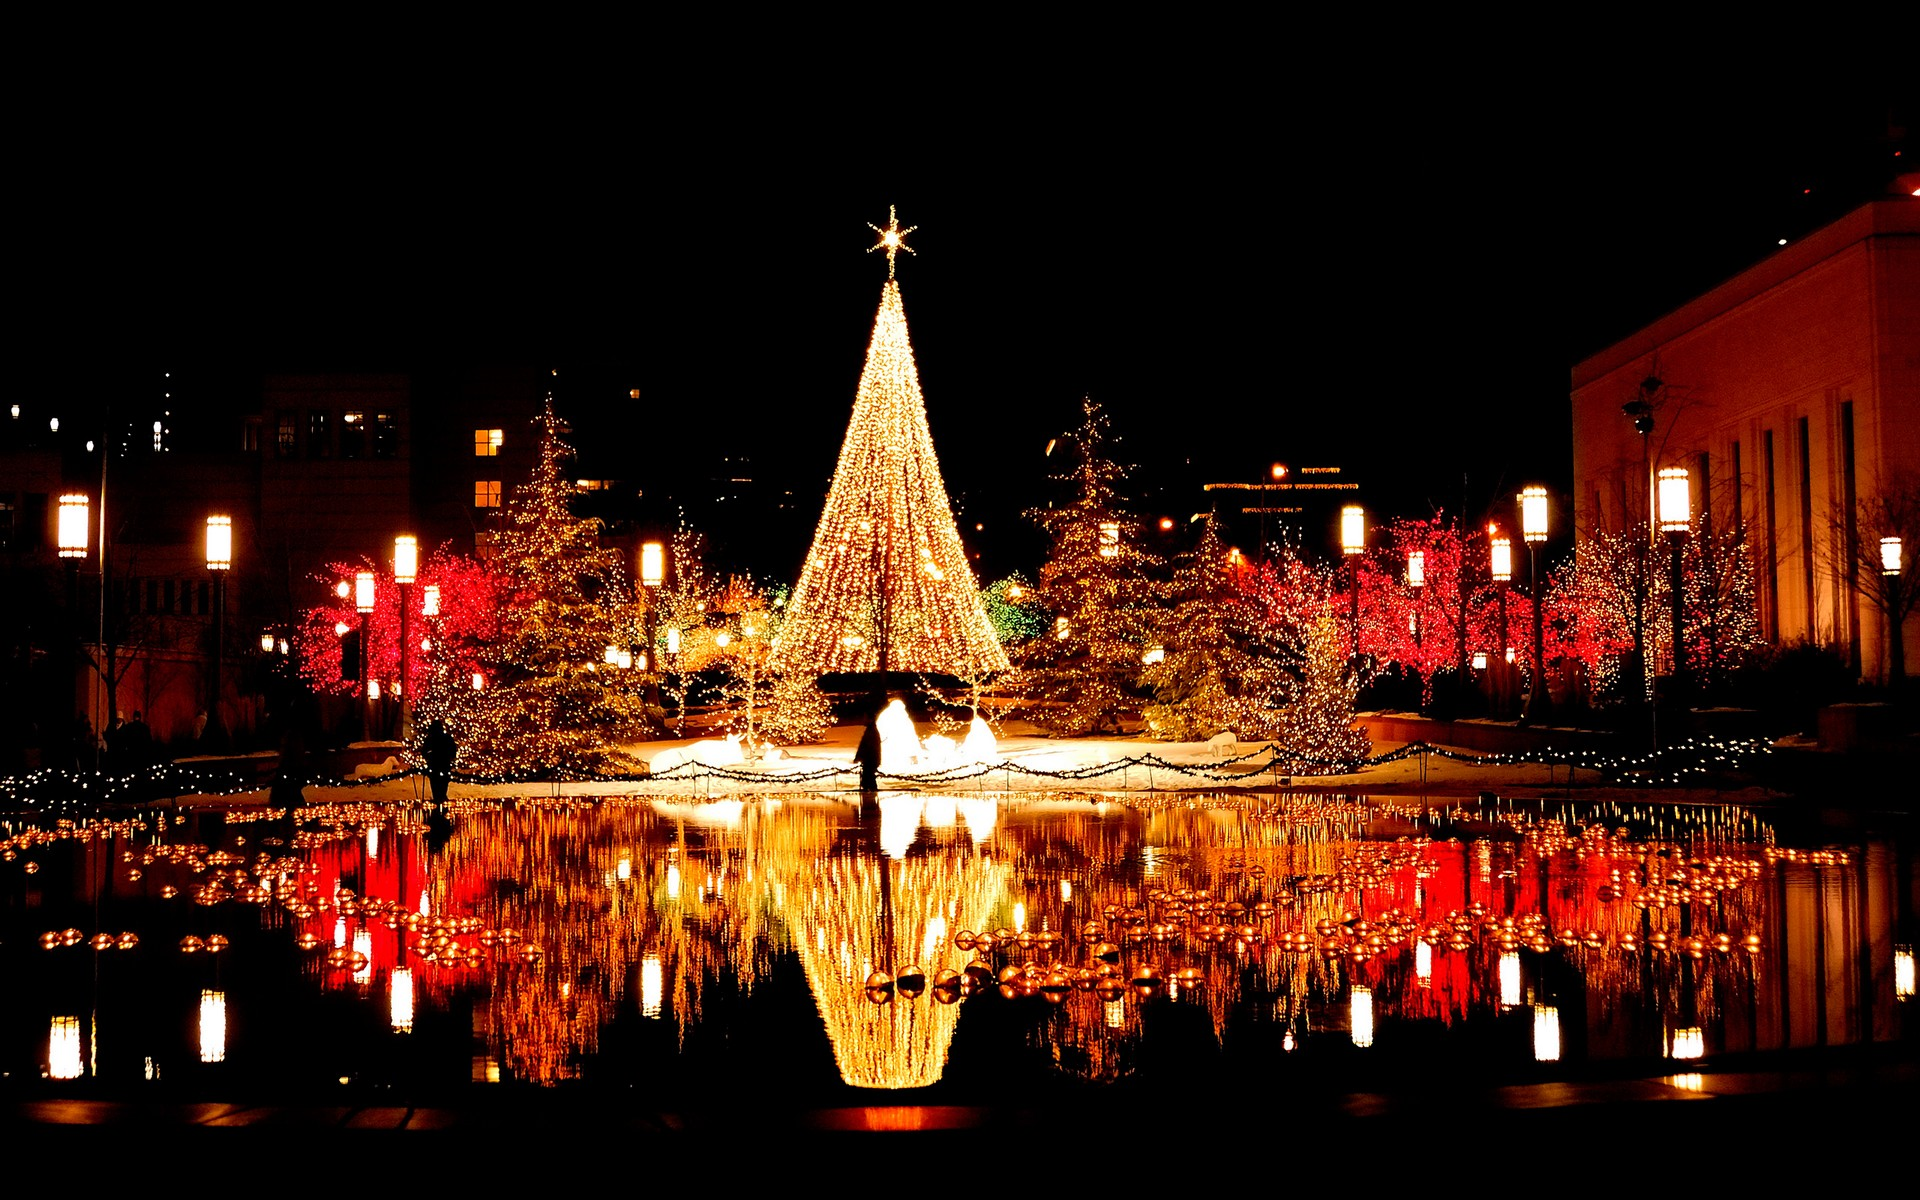 Reflection of christmas tree and trees in the phillipines